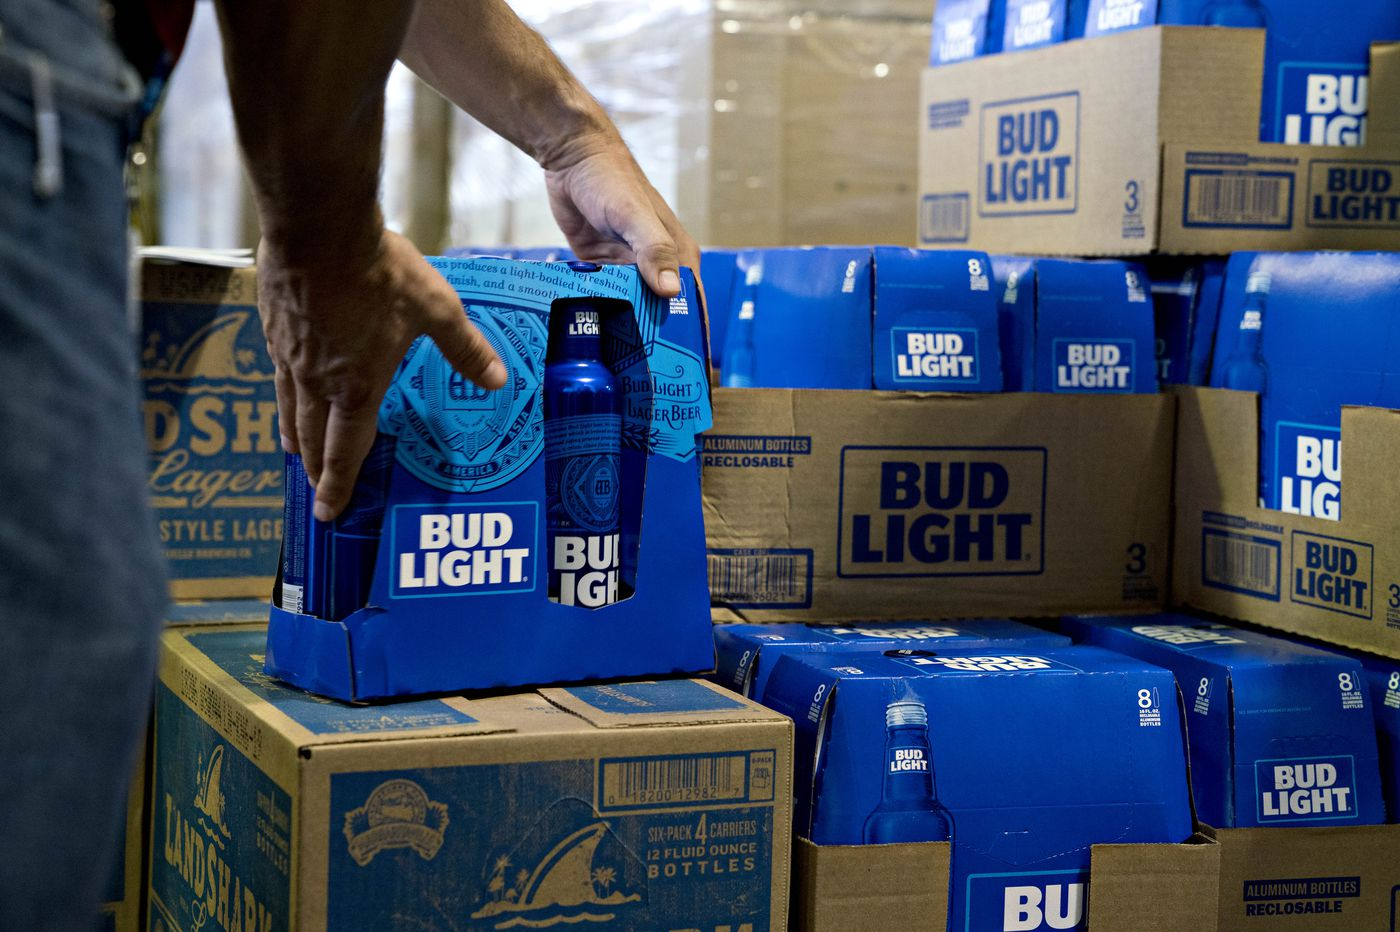 Bud Light wants you to know how many calories are in each beer